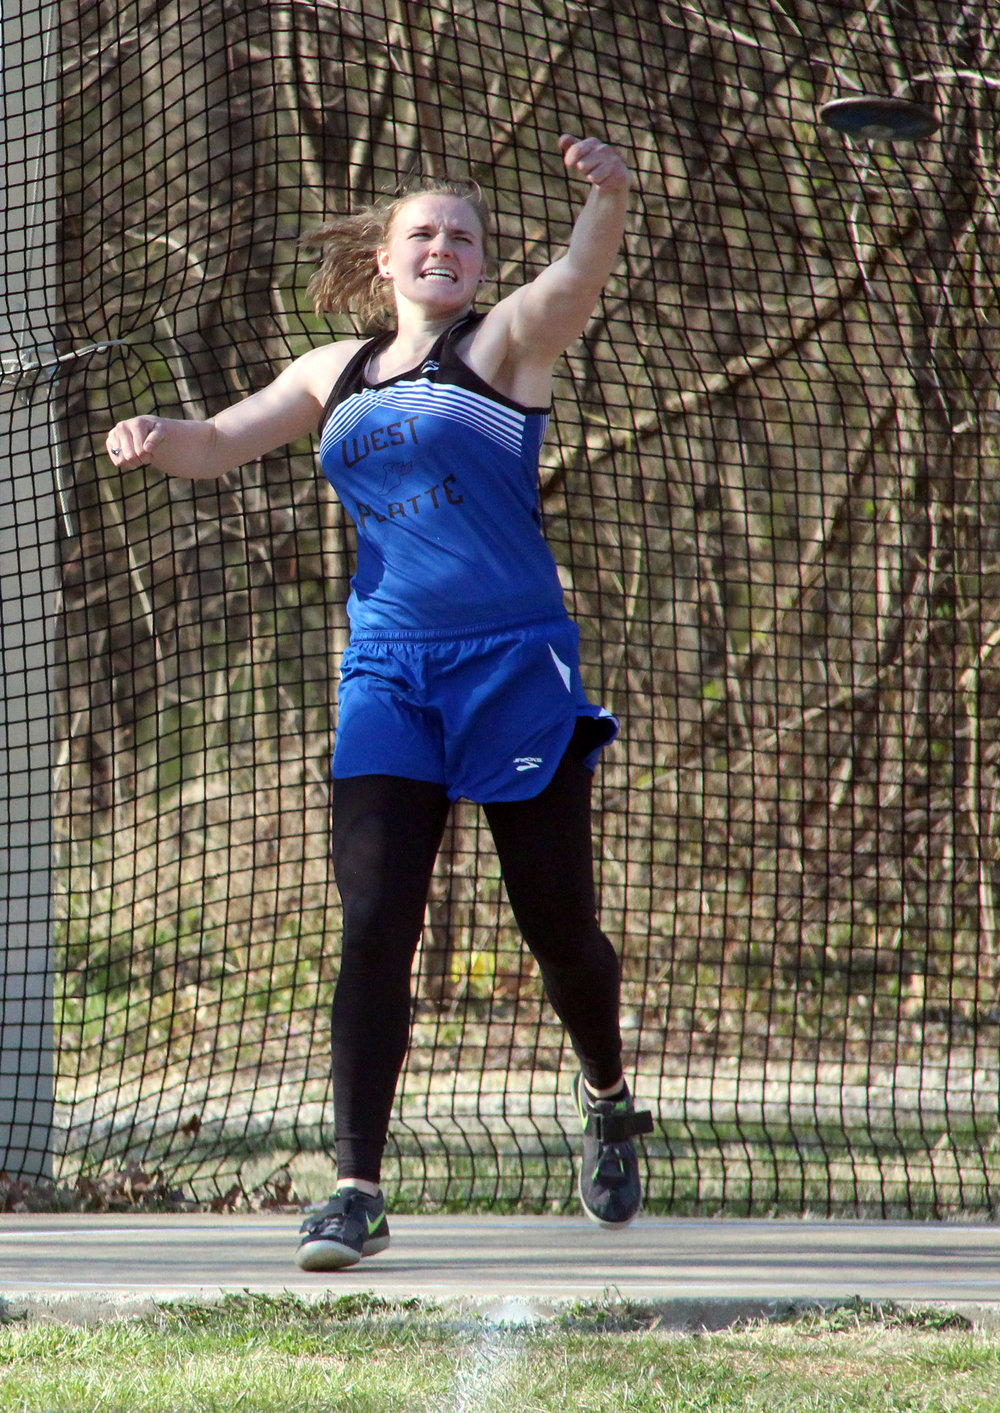 ROSS MARTIN/Citizen photo West Platte senior Sydney Oberdiek tosses the discus during the North Platte Early Bird meet held Thursday, March 23 at the new Rudolph Eskridge Stadium in Weston, Mo. The meet was the first at the newly constructed facility.